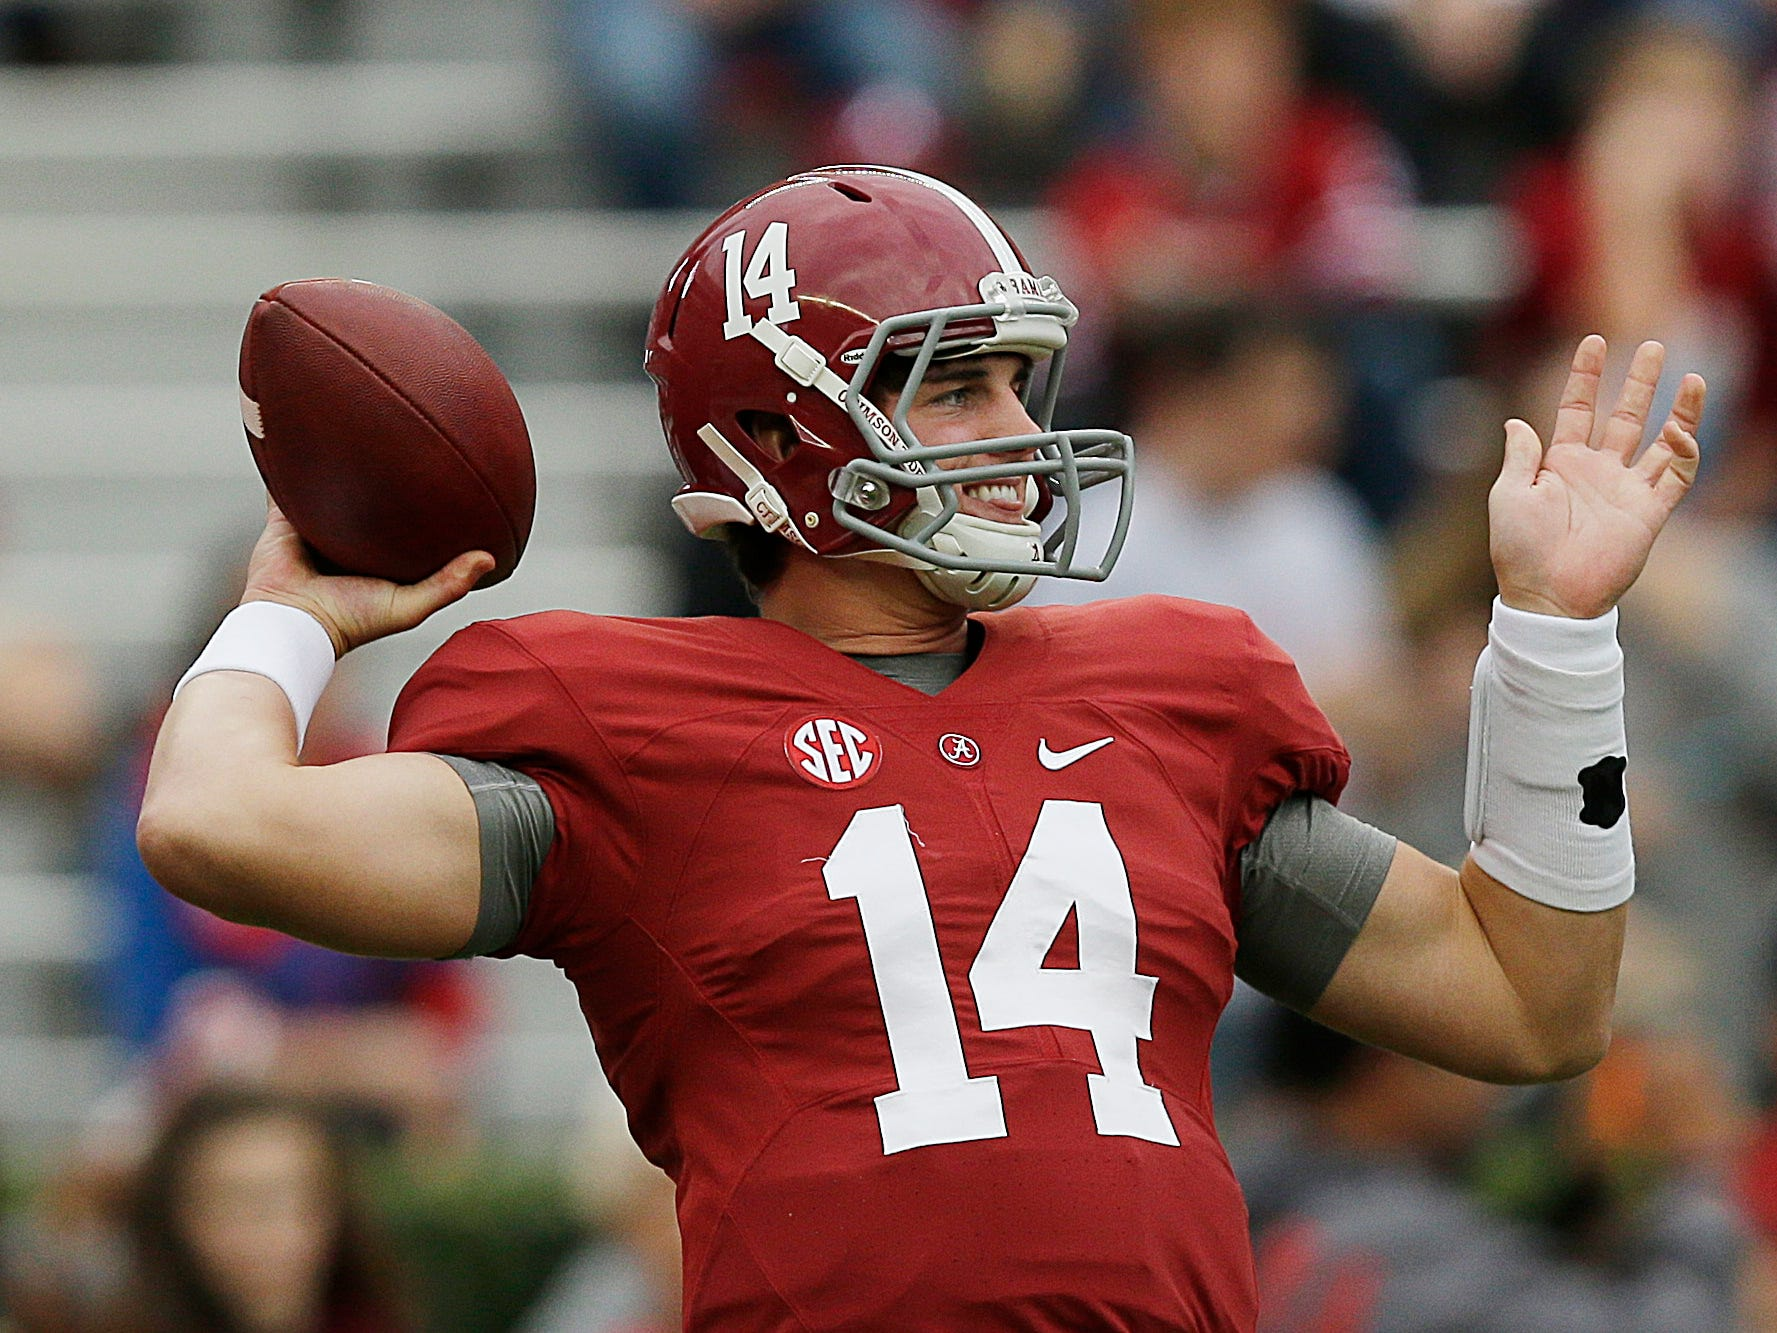 Alabama quarterback Jake Coker (14) sets back to pass before the first half of an NCAA college football game, Saturday, Oct. 10, 2015, in Tuscaloosa, Ala. (AP Photo/Brynn Anderson)